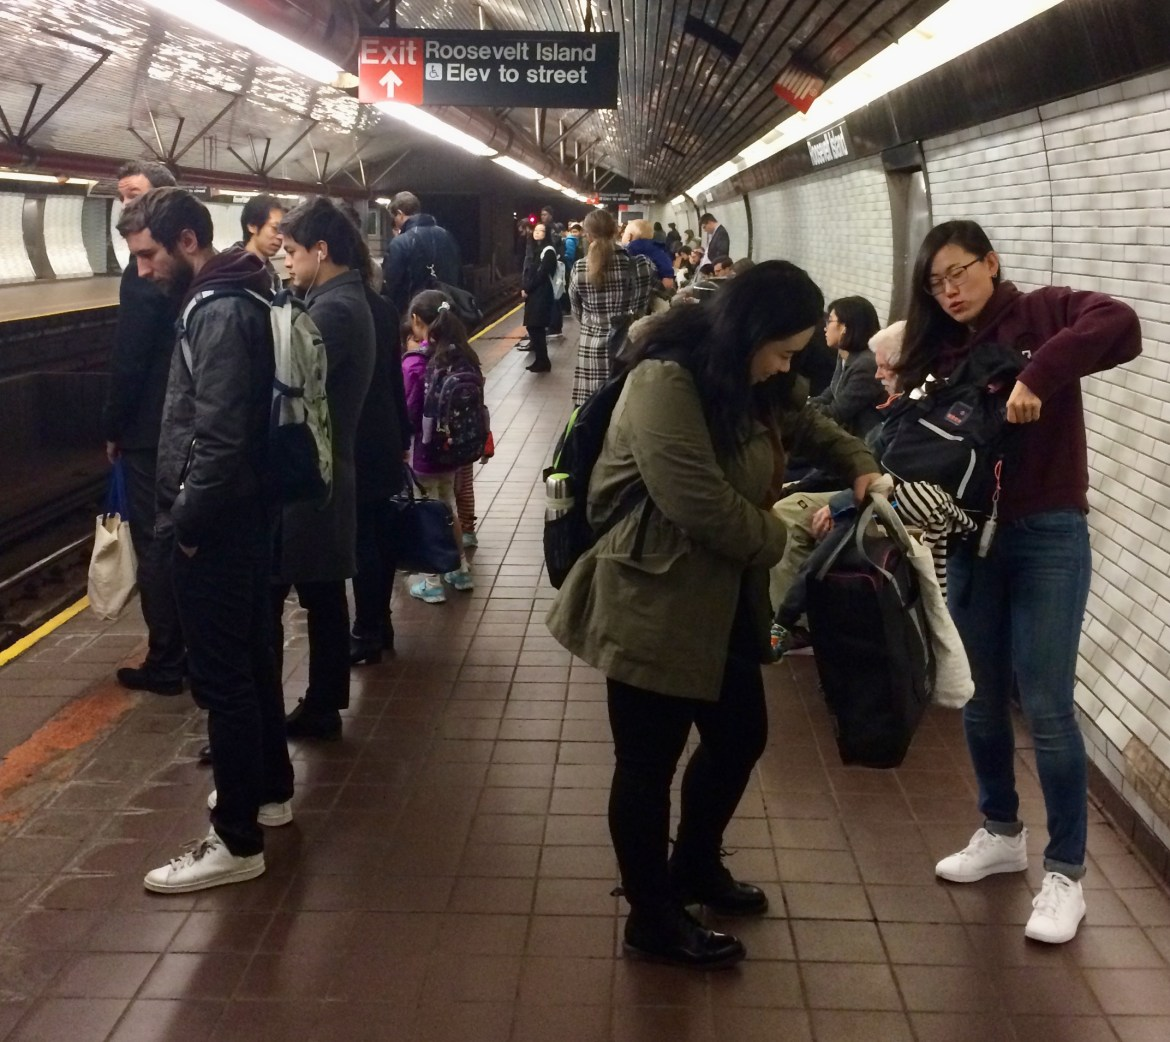 Filthy subway air, NYU finds, adds to the hazards of New York City life